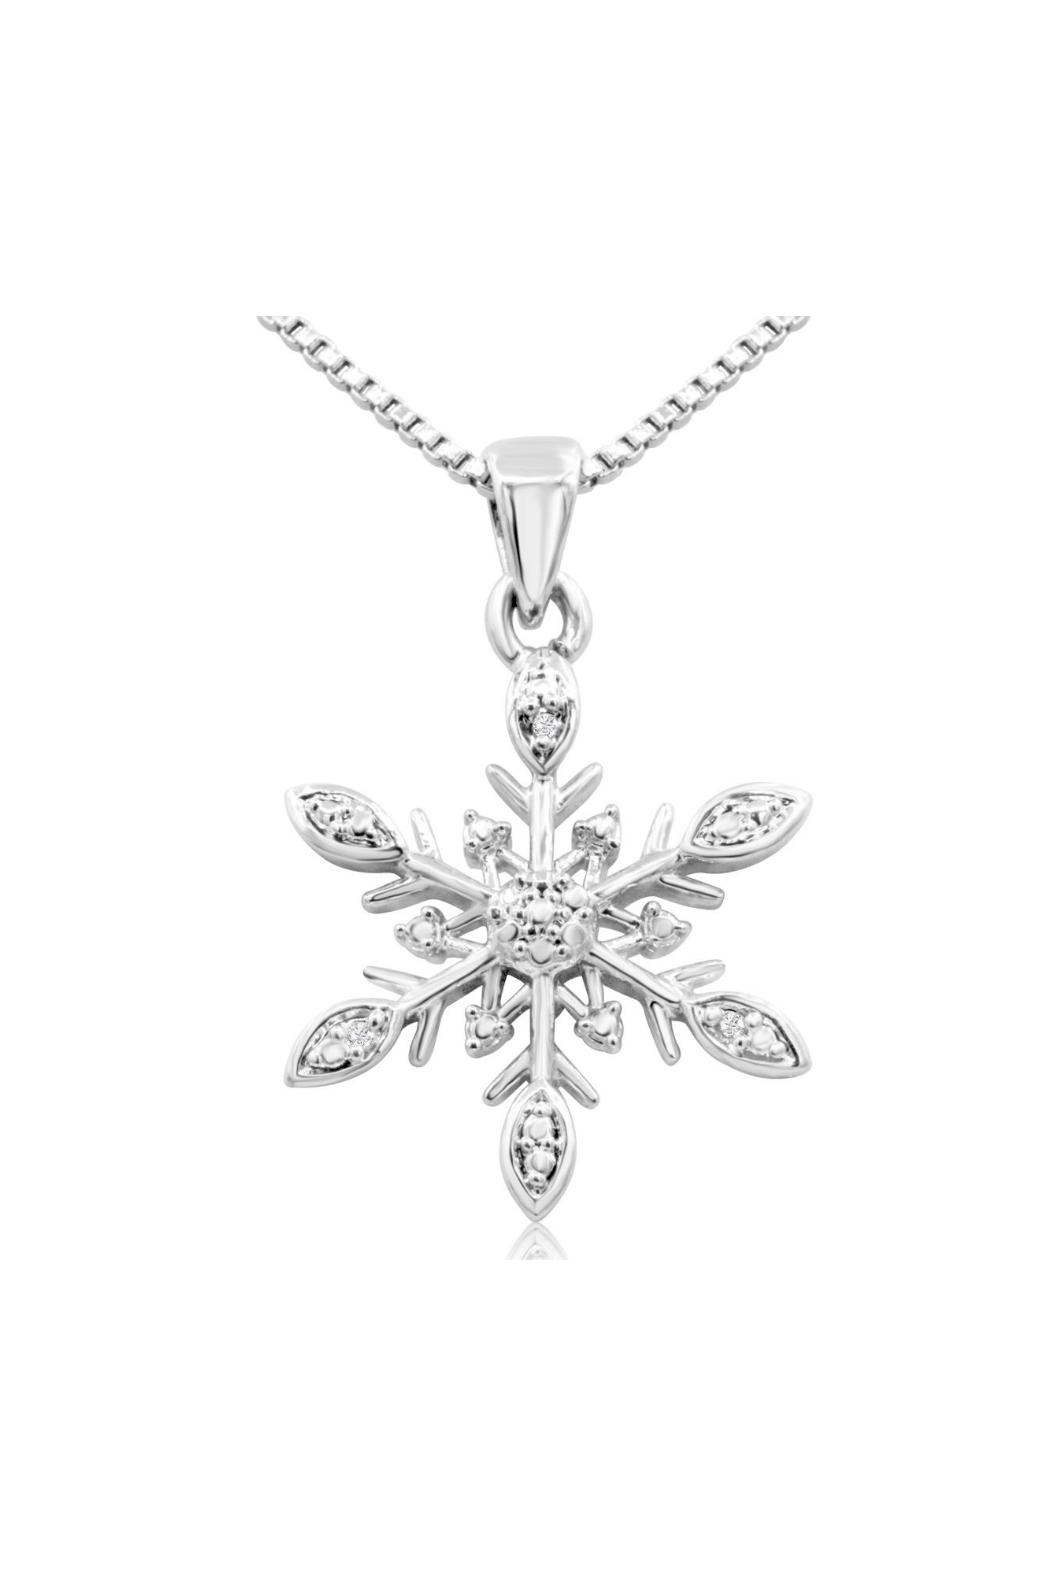 ic sterling product pendant image qitok jqa moss of jewellers snowflake silver necklace diamond ben pagespeed jqvznp